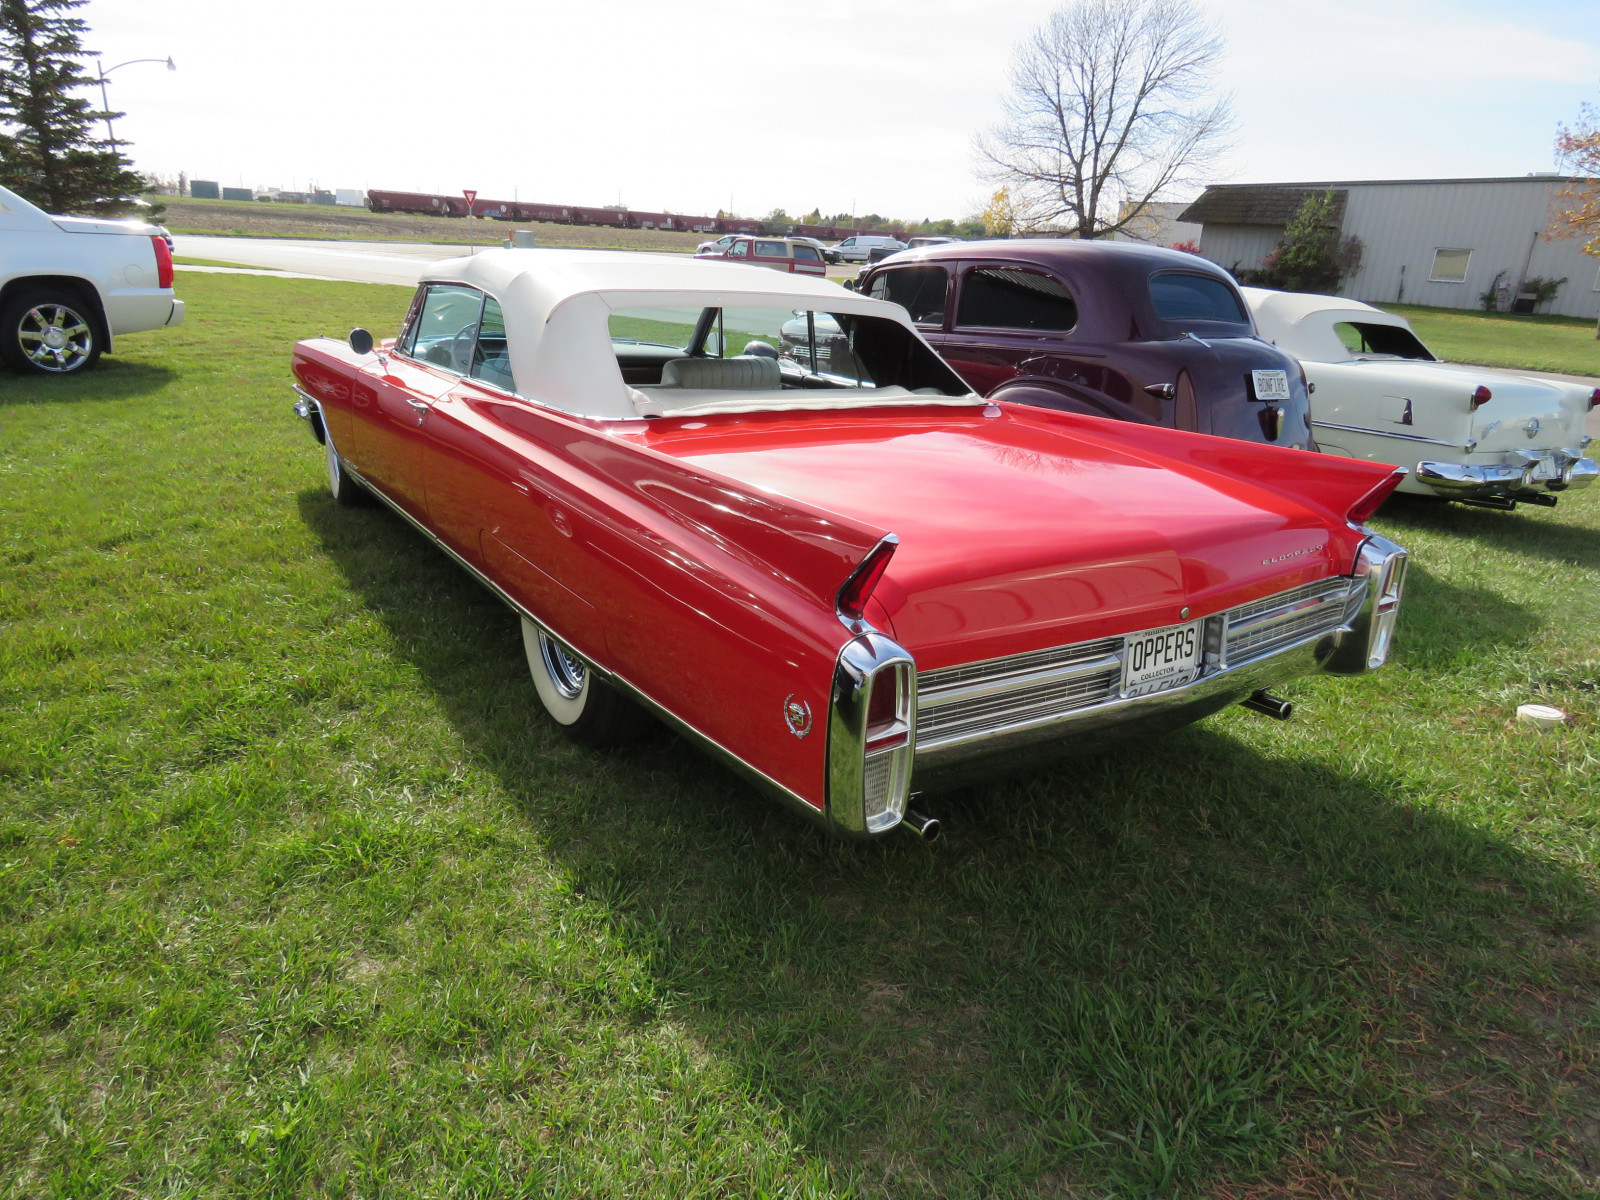 Beautiful 1963 Cadillac Eldorado Convertible - Image 4